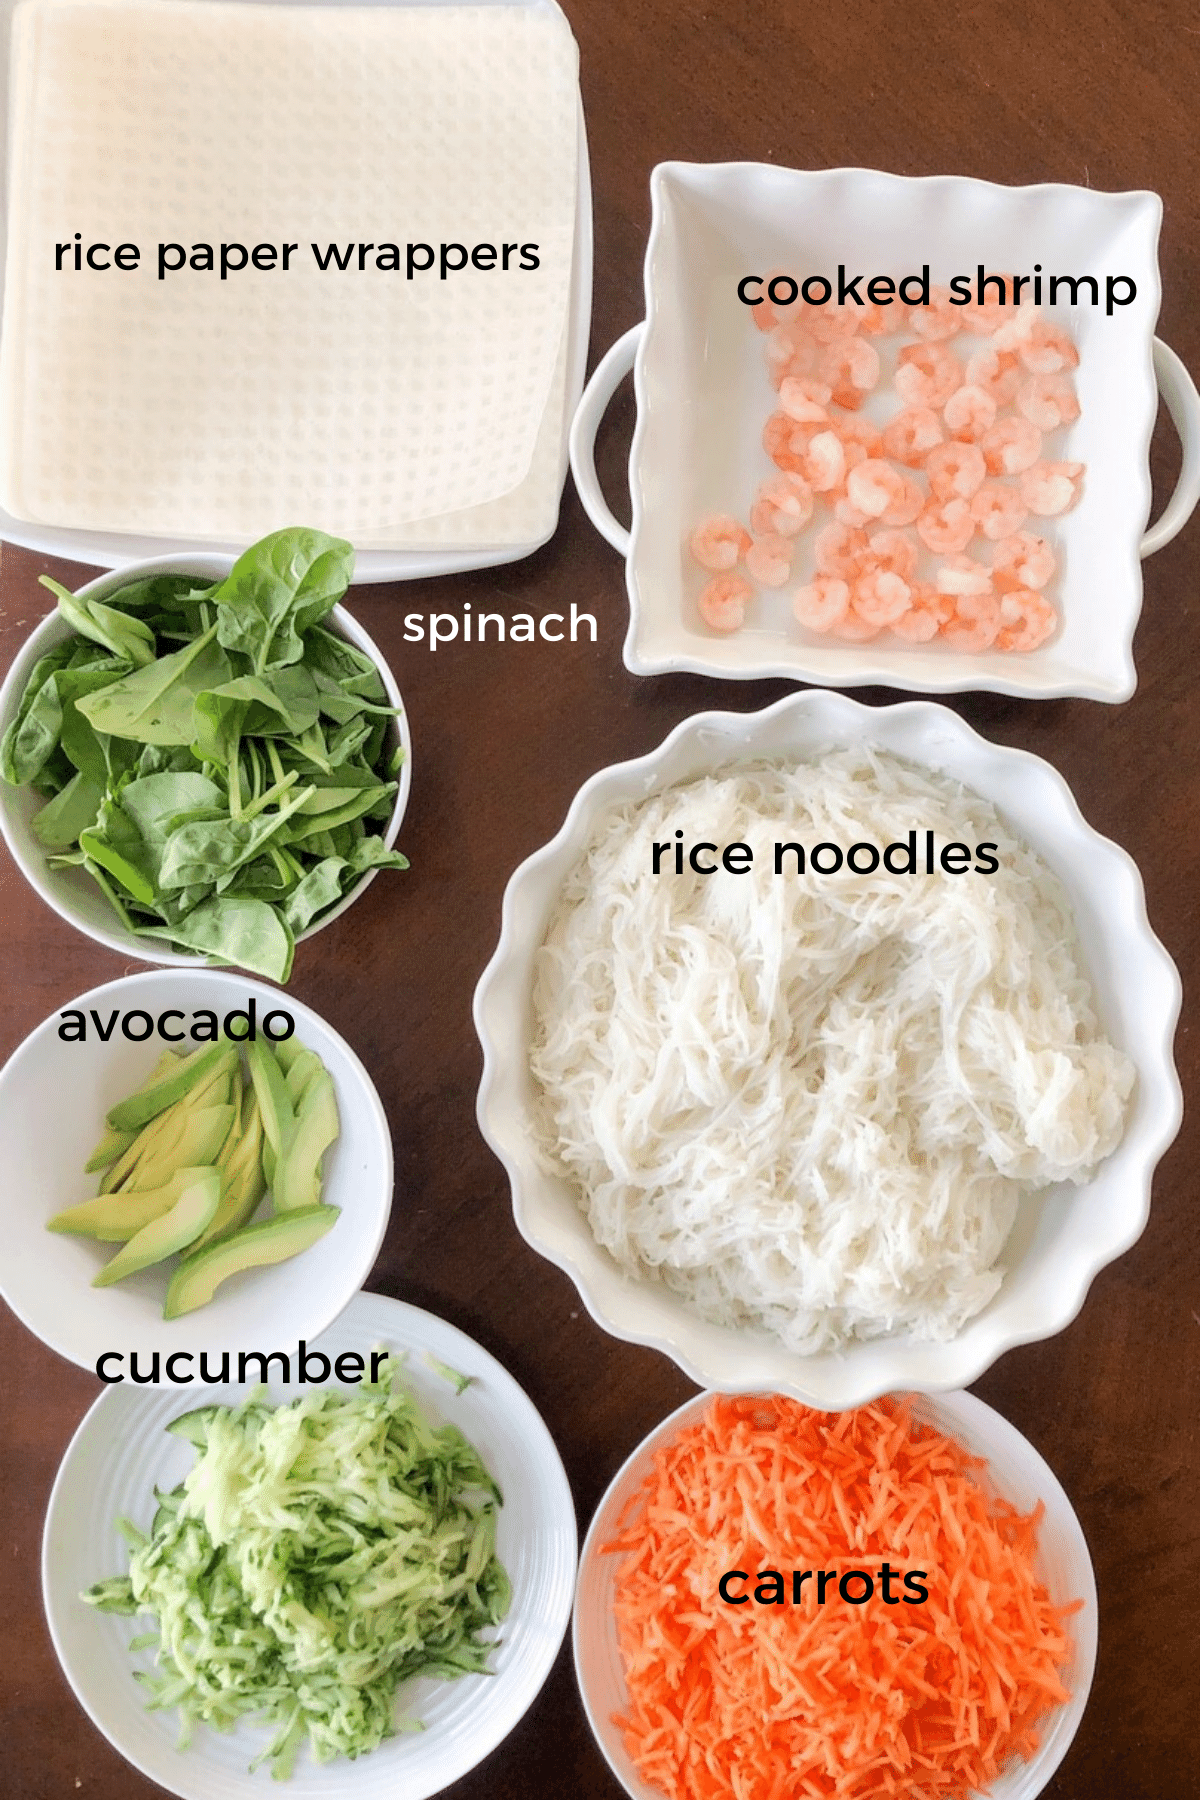 Ingredients for spring rolls placed in separate dishes, ready for rolling